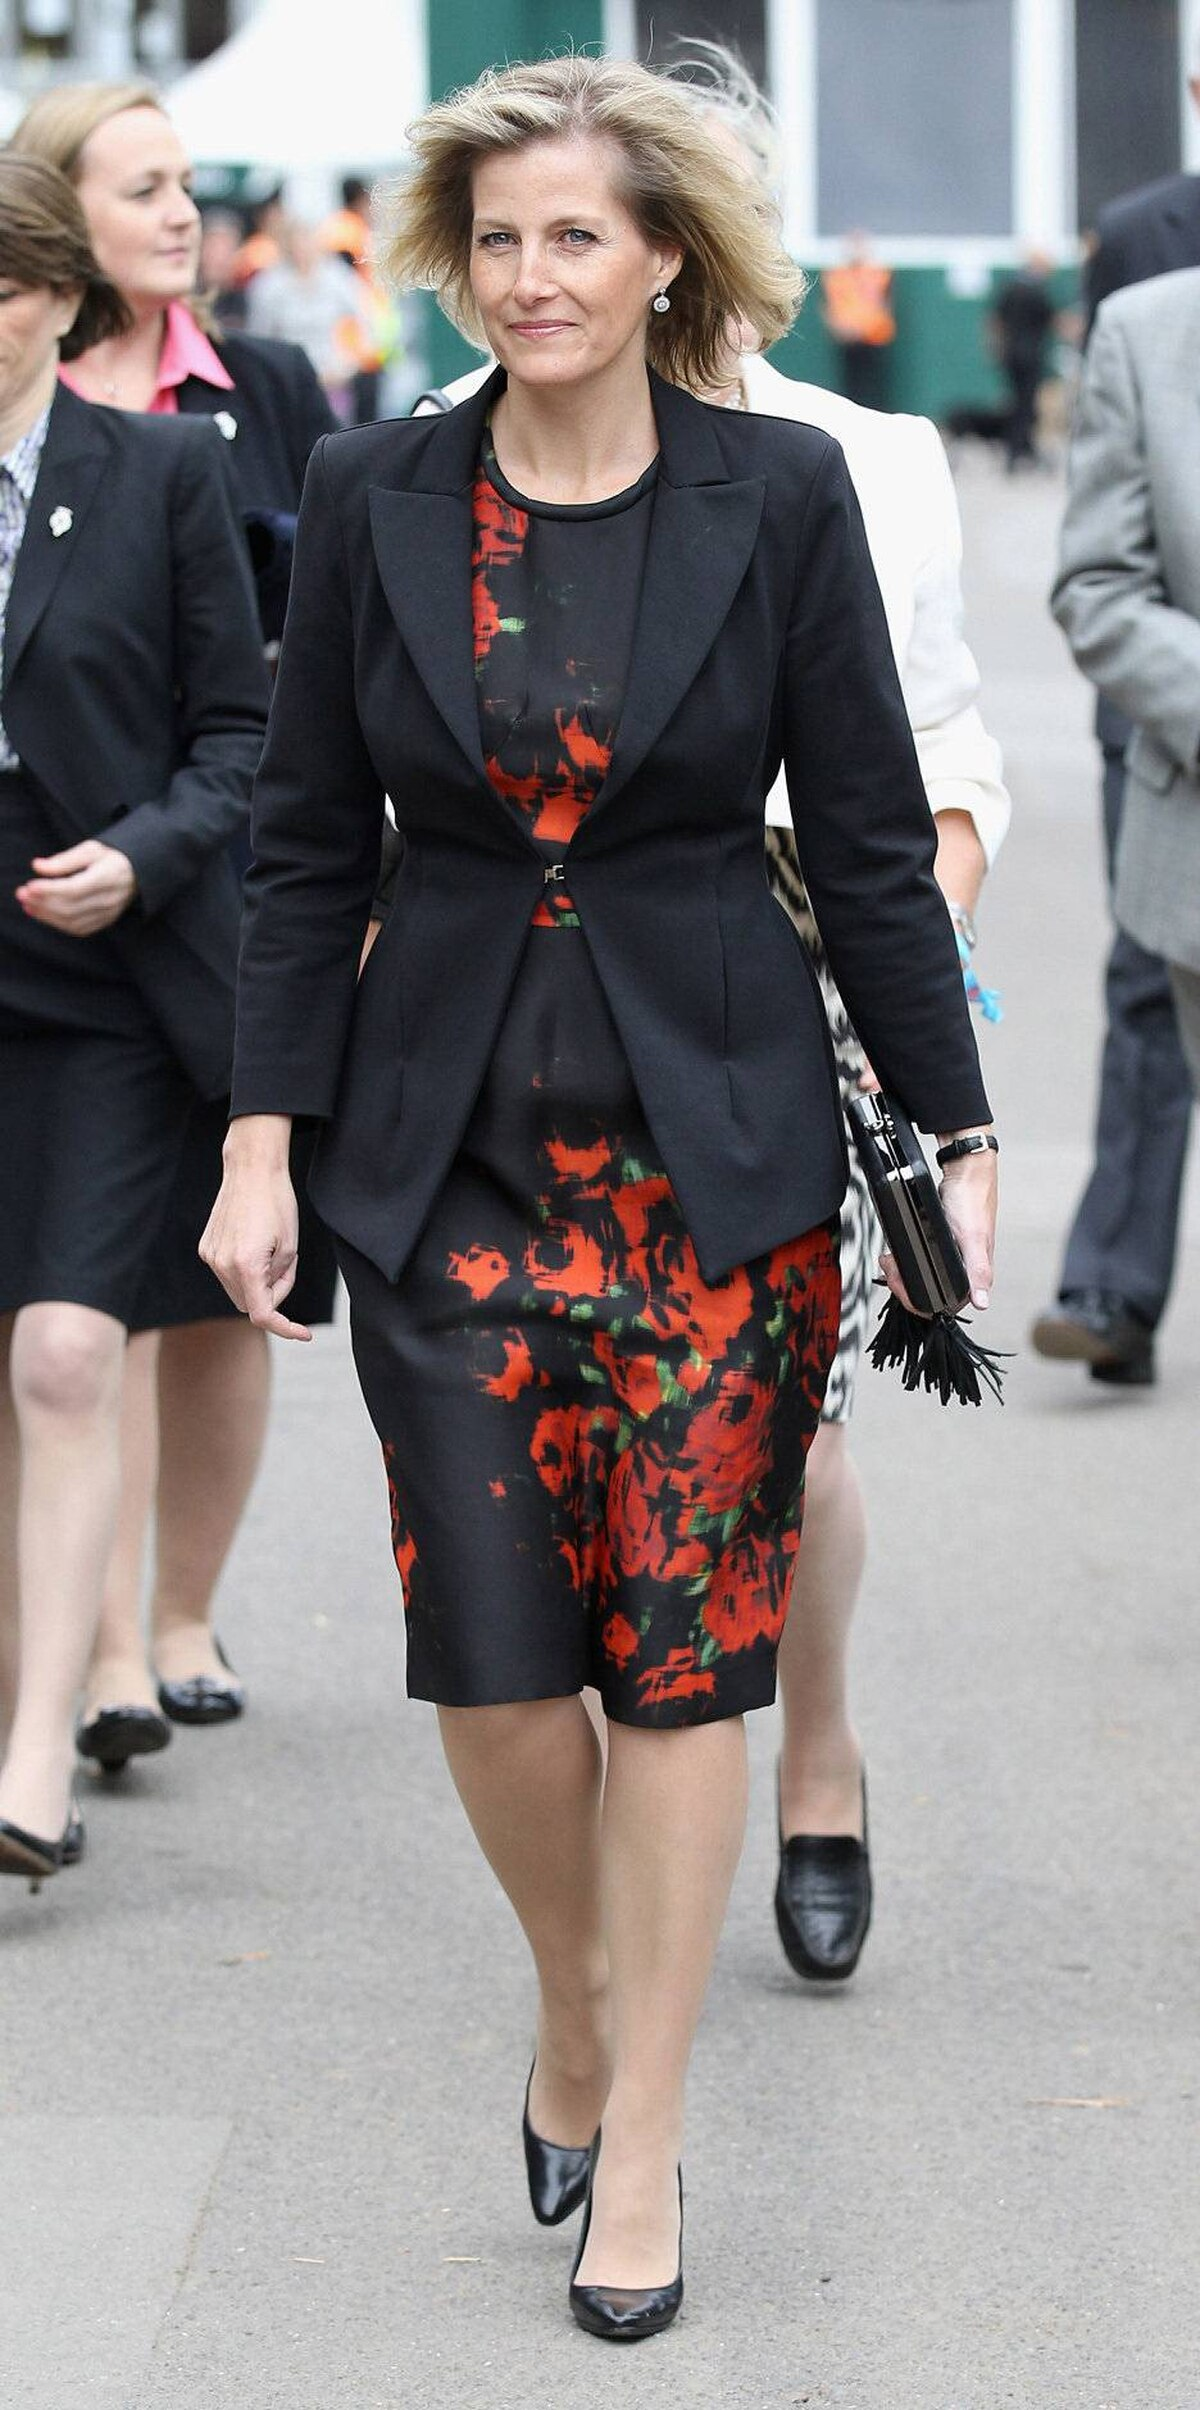 Sophie Rhys-Jones, Countess of Wessex, visits the Chelsea Flower Show press and VIP day in London on May 23, 2011.